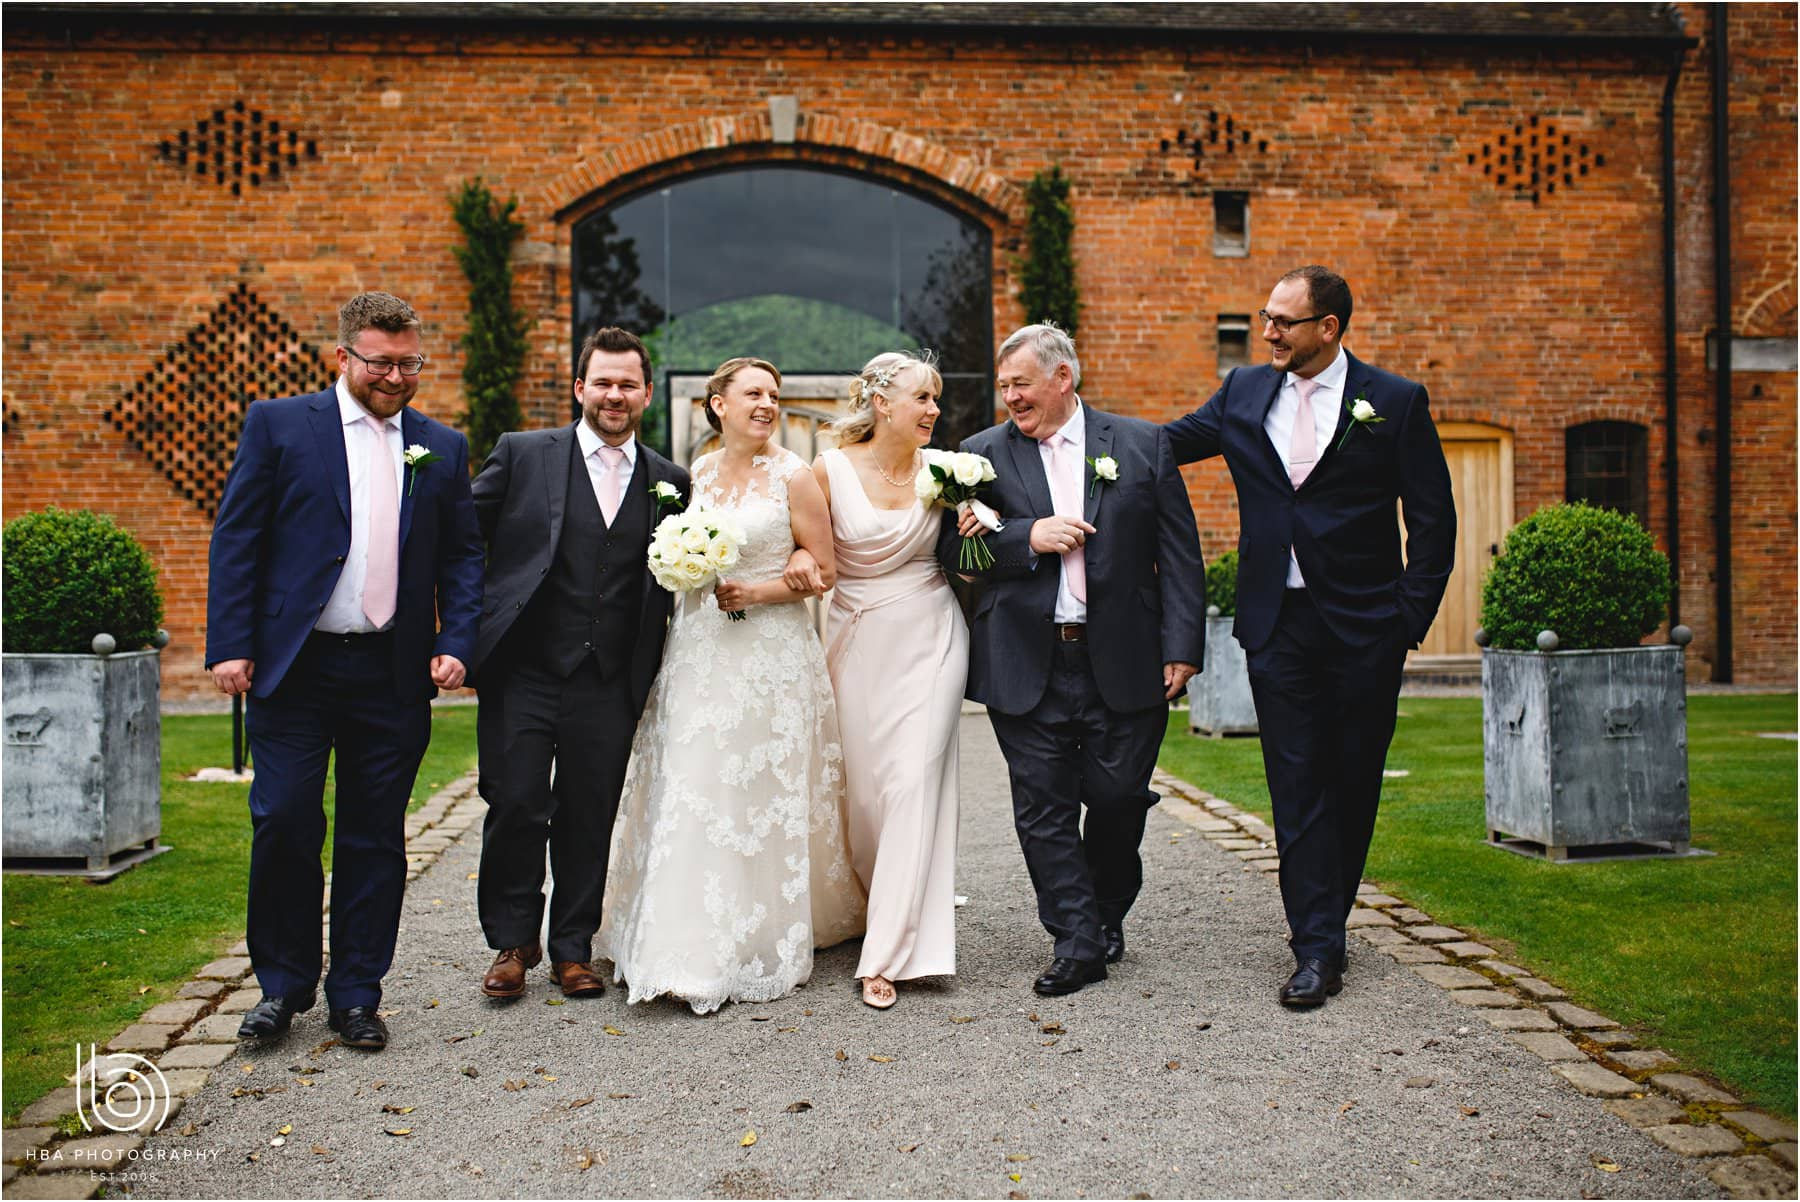 the wedding party at Shustoke